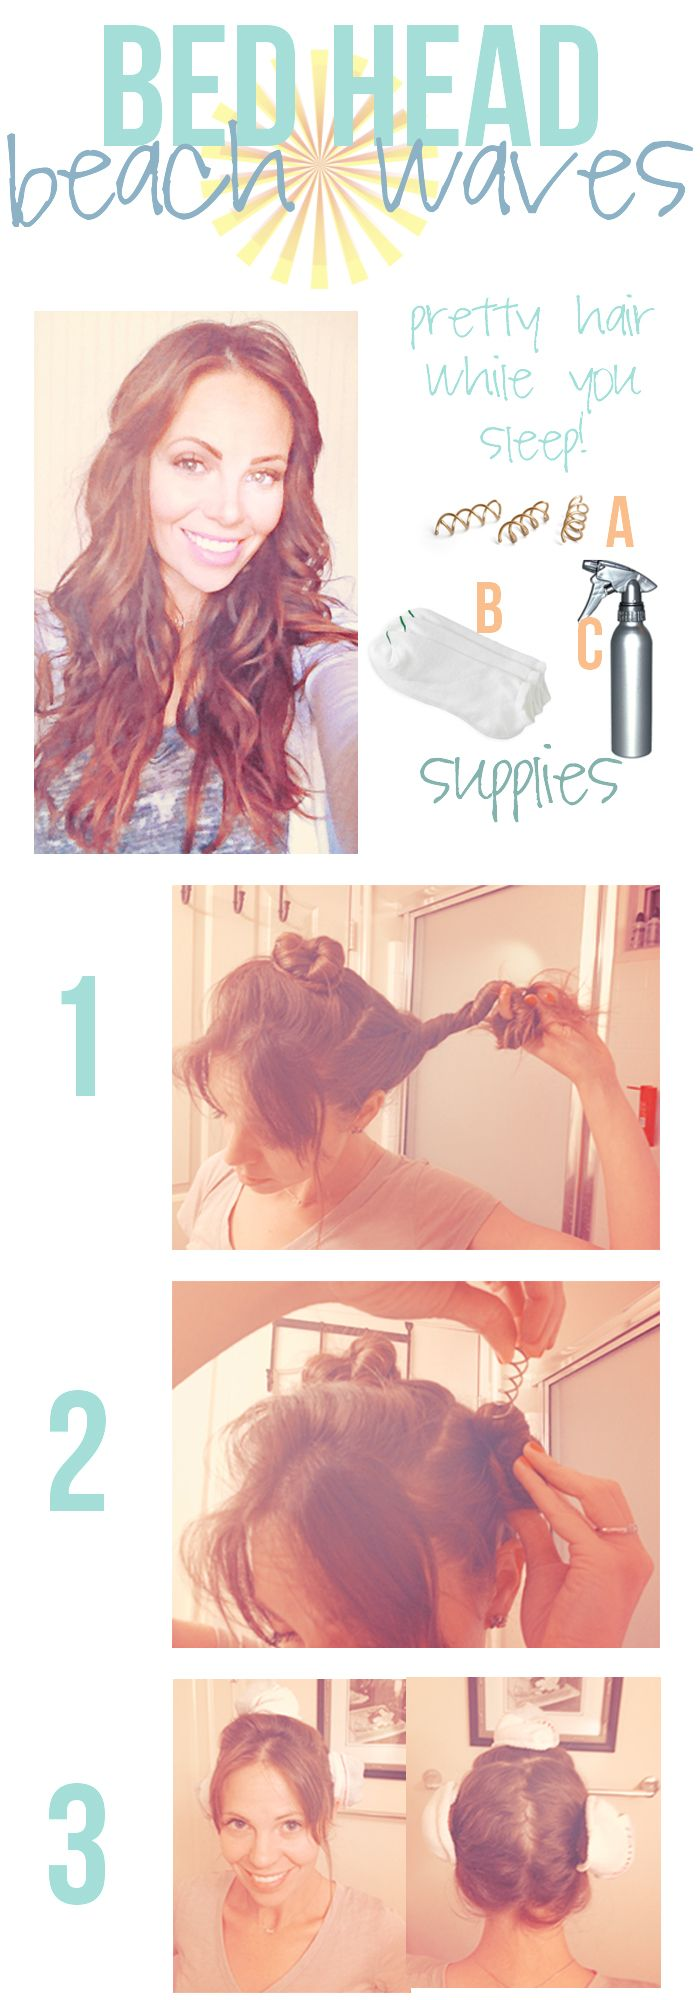 Sleep-On-It Beach Waves: Dampen Hair With Sea Spray; Separate Hair Into 3 Sections & Roll Each Section Away From Face Into Bun; Secure Each Bun By Spinning In A Spin Pin (No Clamp & Keeps Away Kinks); Cover Buns With Sock Toes (Keeps Frizz From Attacking) & Go To Sleep; When You Wake Remove Pins & Tousle Hair; Add Hair Spritz If You Want